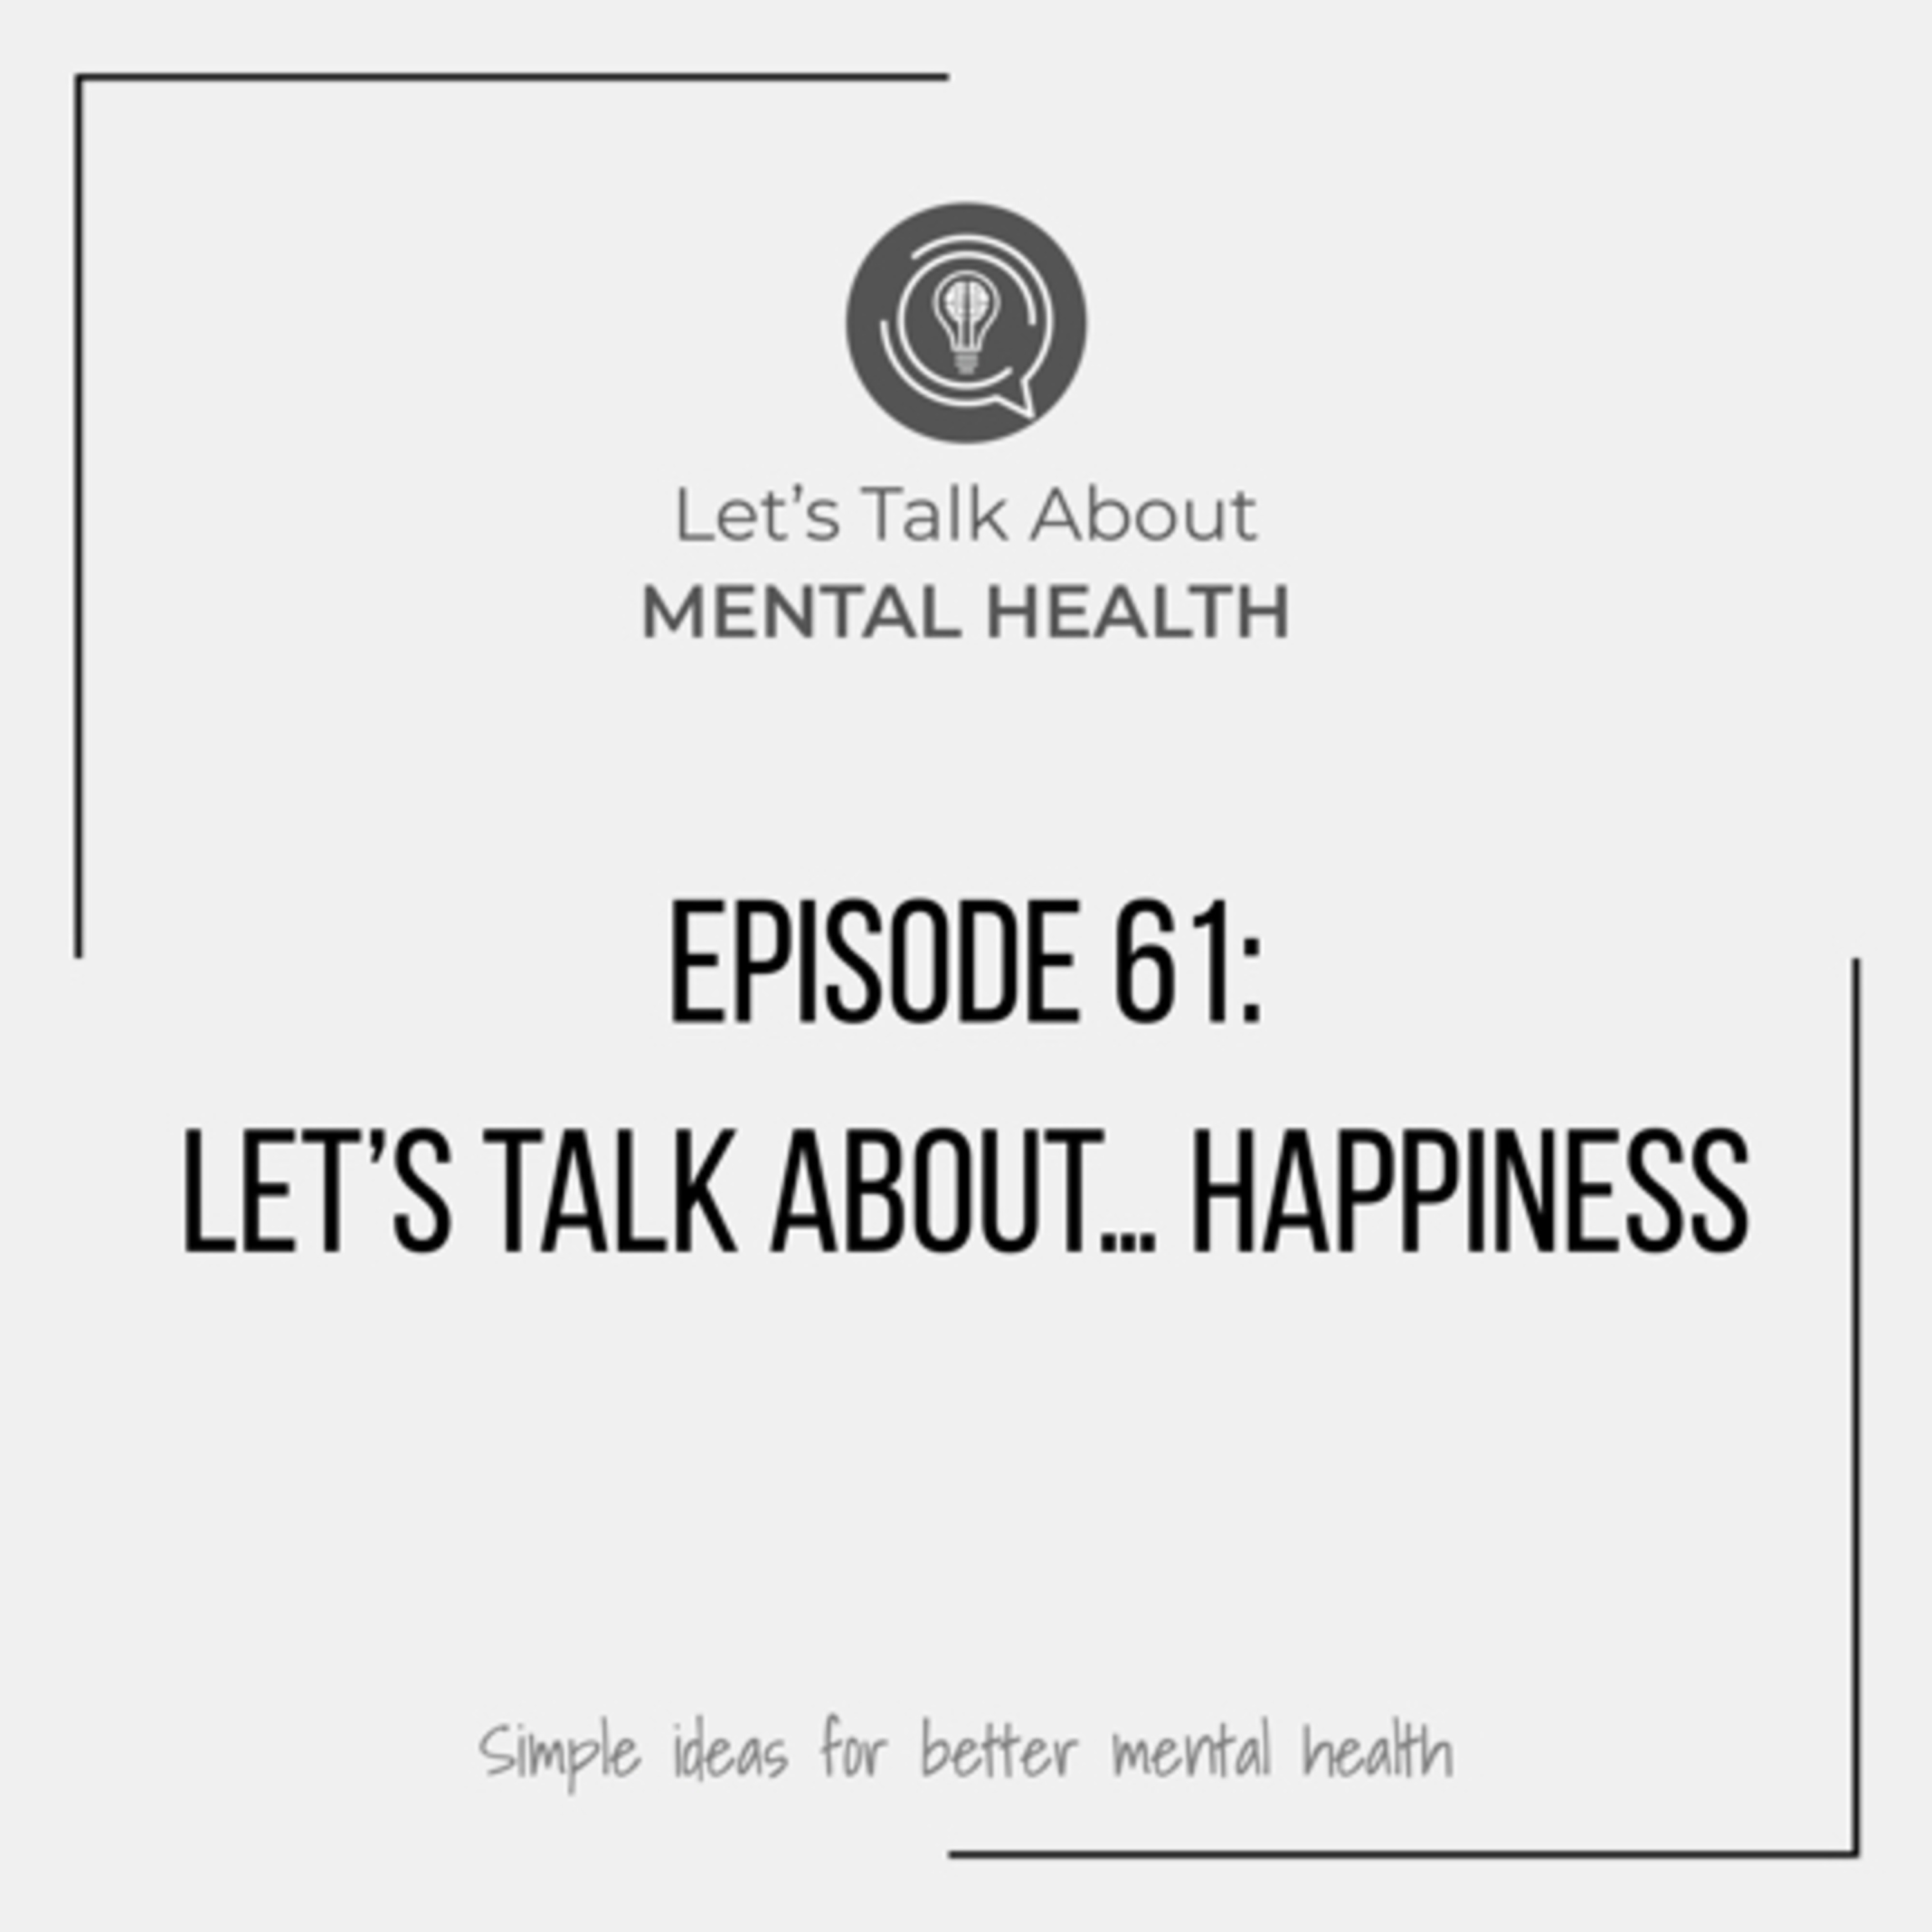 Let's Talk About Mental Health - Let's Talk About... Happiness